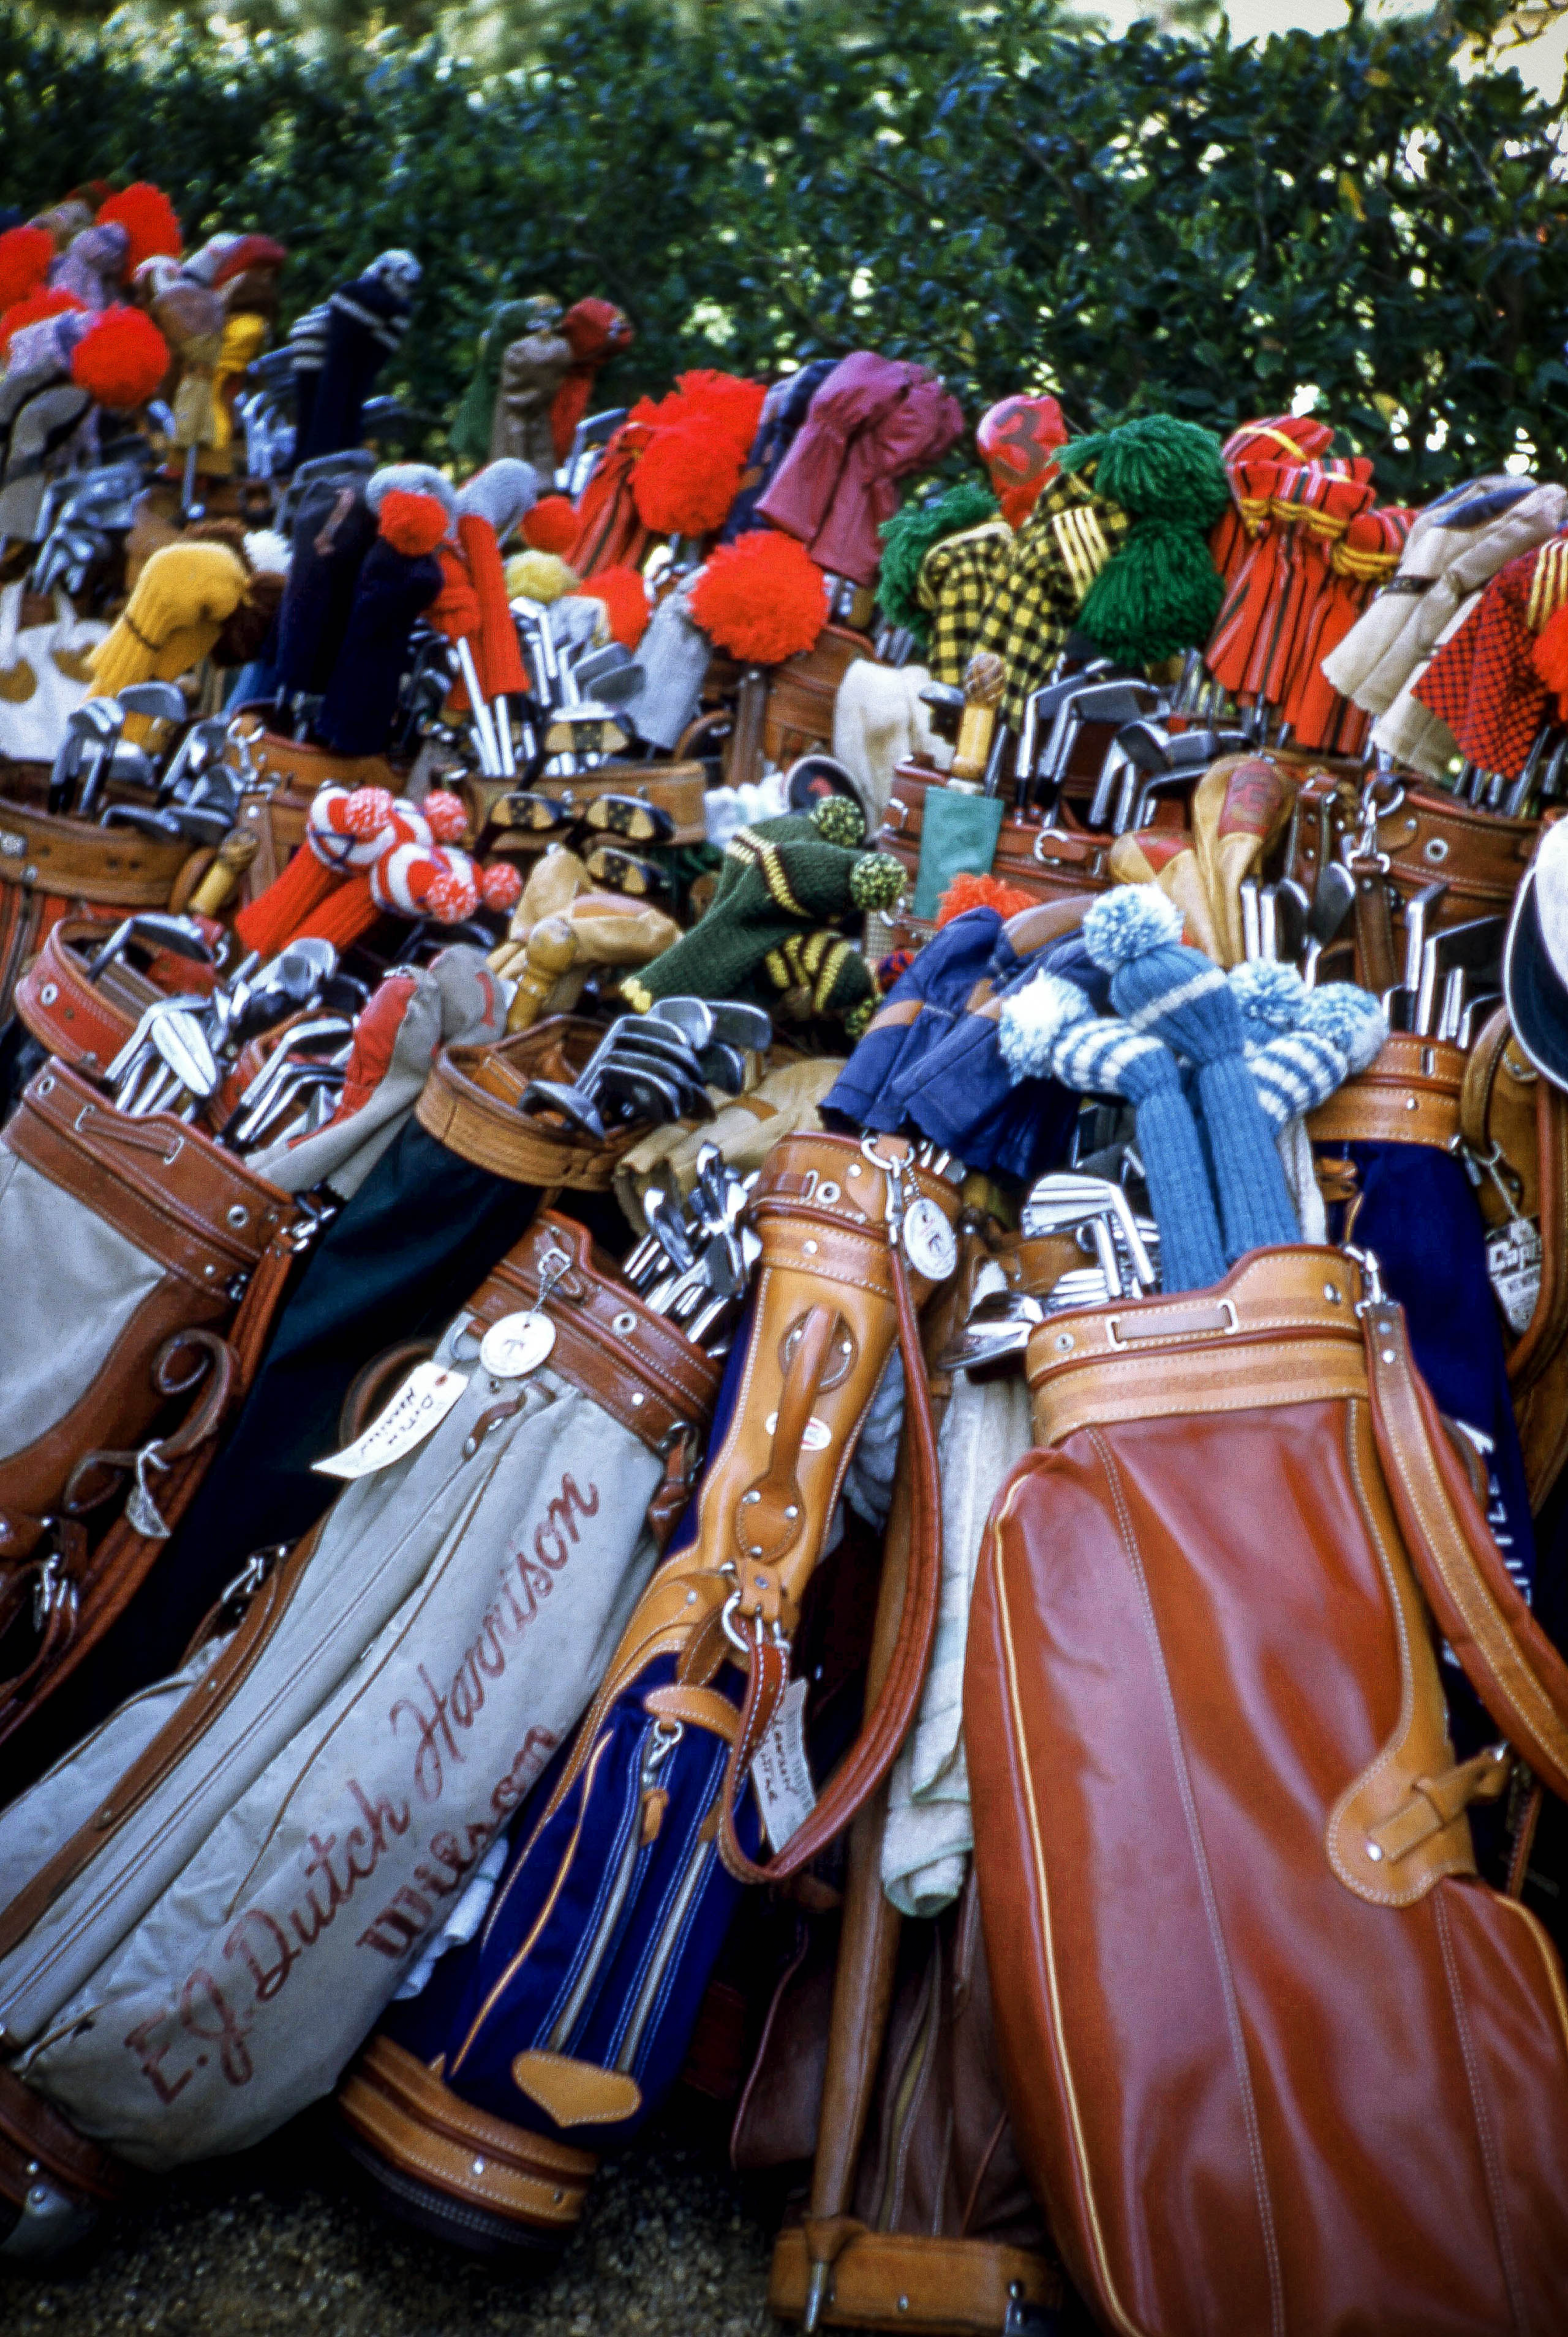 1954: General view of Dutch Harrison's golf bag along with many other golf bags are shown circa 1954. (Photo by Hy Peskin/Getty Images